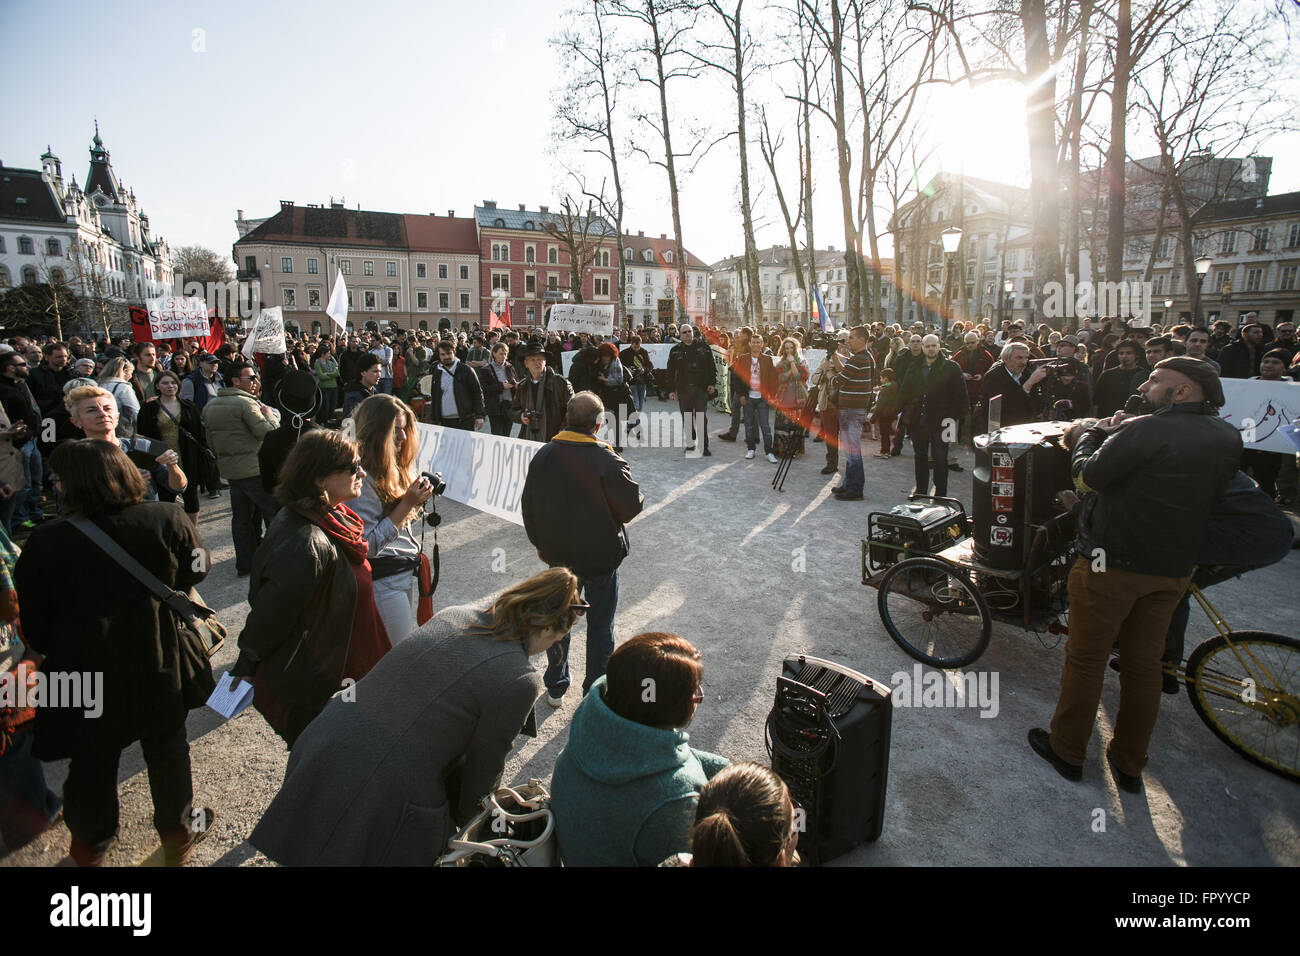 Ljubljana, Slovenia. 19th Mar, 2016. Protesters listen to speeches in Zvezda Park during a protest against racism - Stock Image